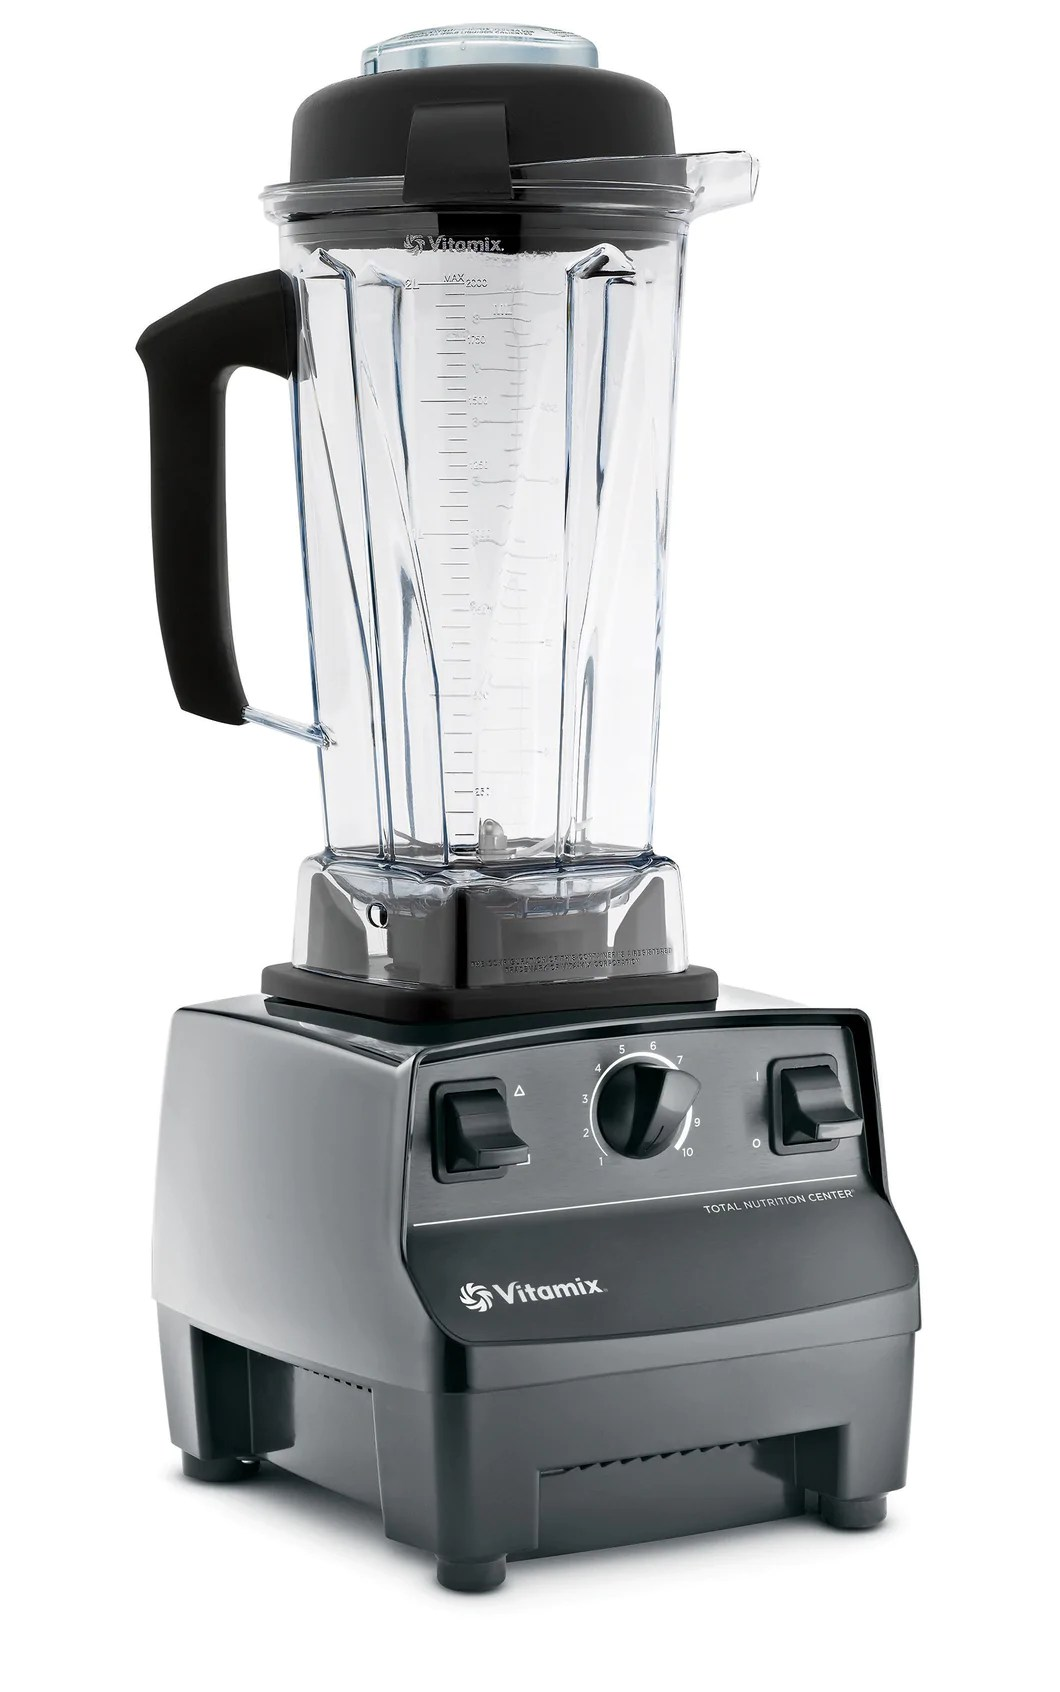 Vitamix Total Nutrition Center 5200 In Black Vitanutrition Philippines